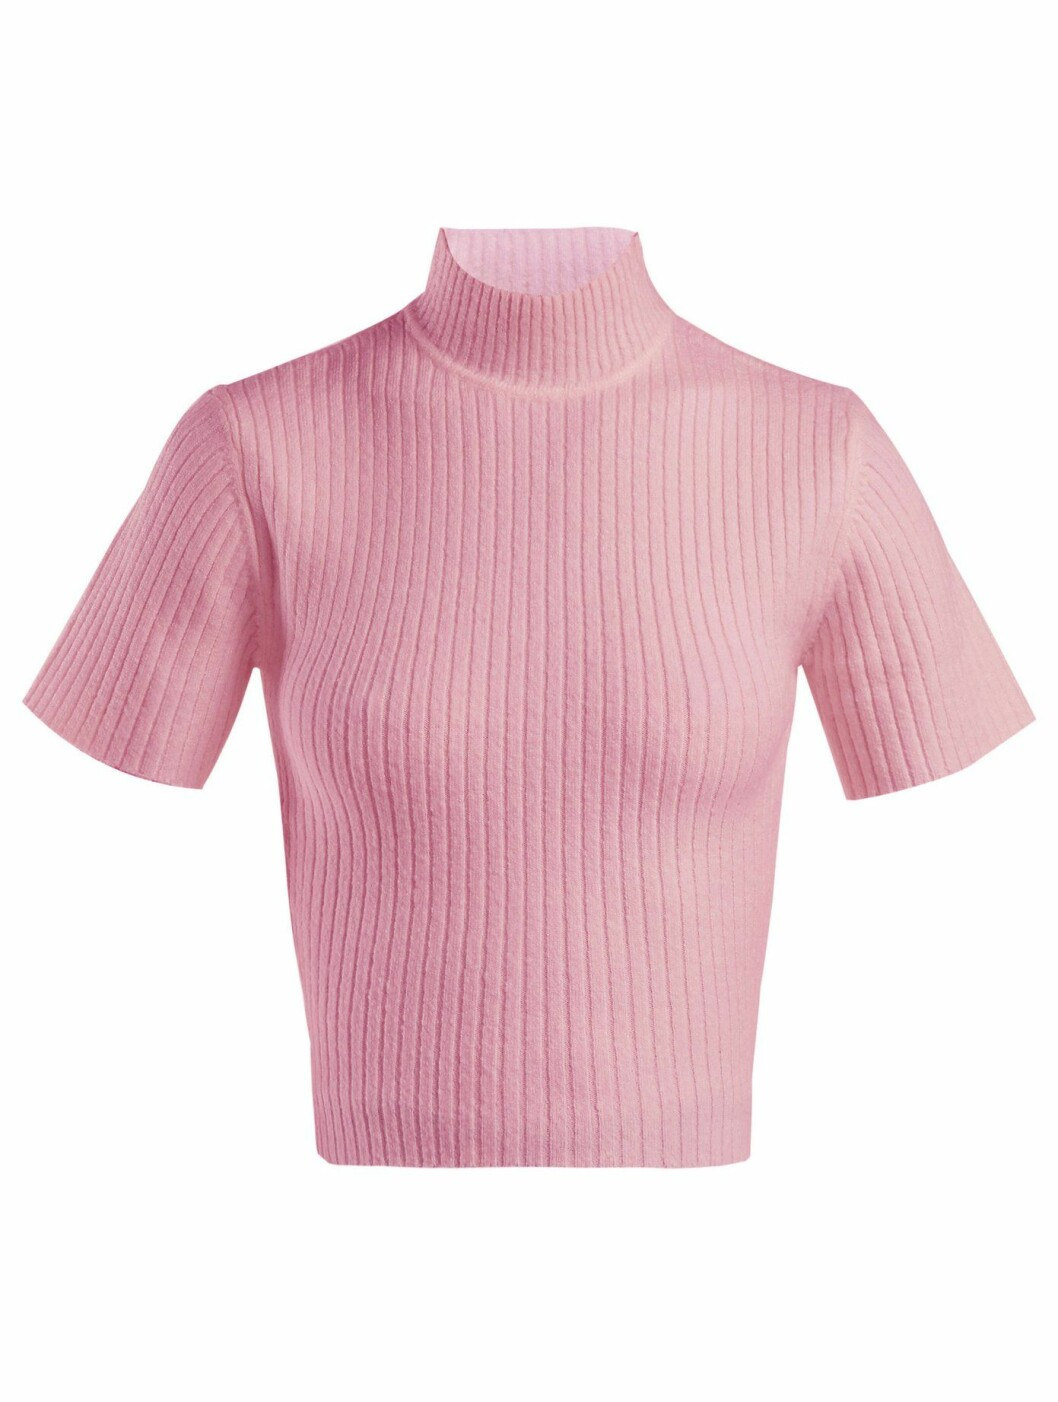 Topp fra Staud  1015,-  https://www.matchesfashion.com/intl/products/Staud-Claudia-cropped-cut-out-sweater--1226886